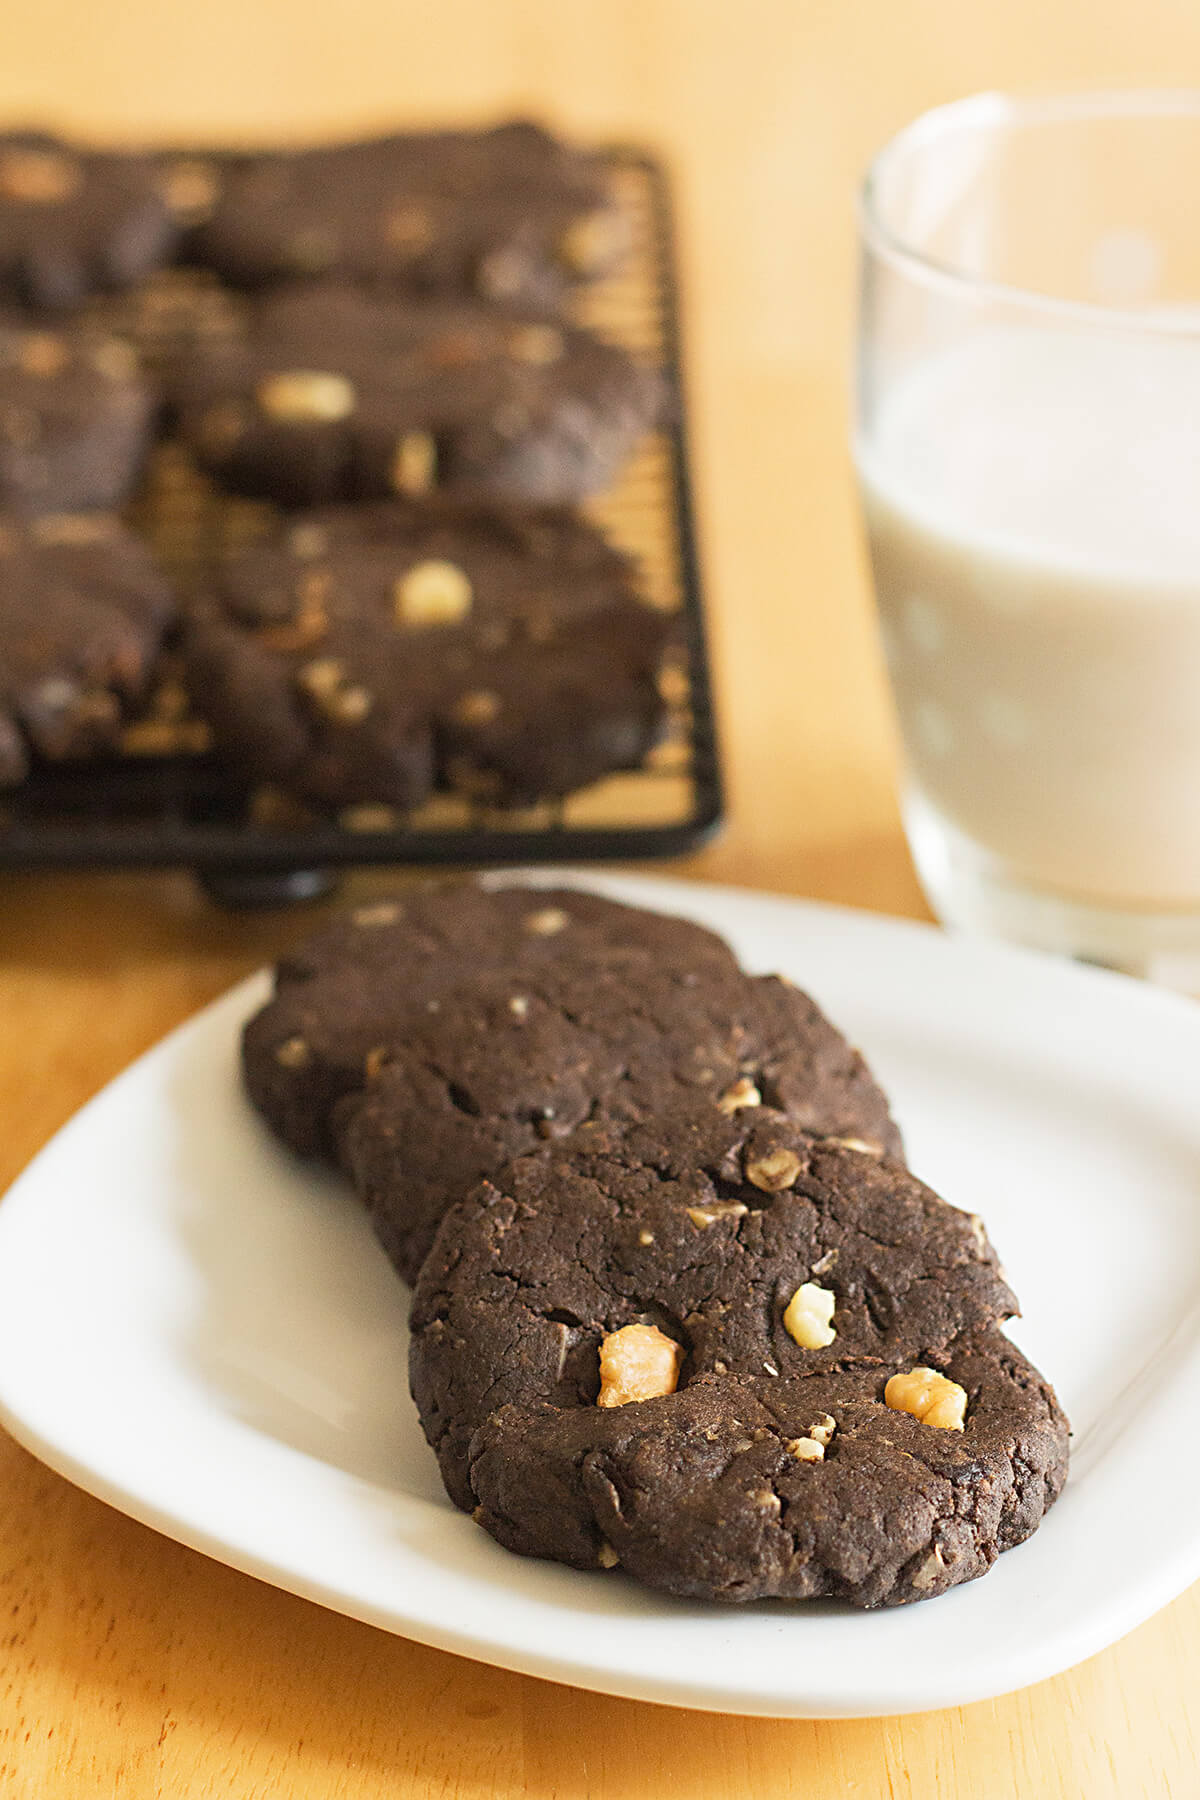 A Weight Watchers Freestyle friendly cookies recipe! Flourlesspeanut butter brownie cookies are gluten free, low sugar cookies made with the perfect combination of chocolate and peanut butter. This flourless brownie cookie recipe can be made with or without walnuts.